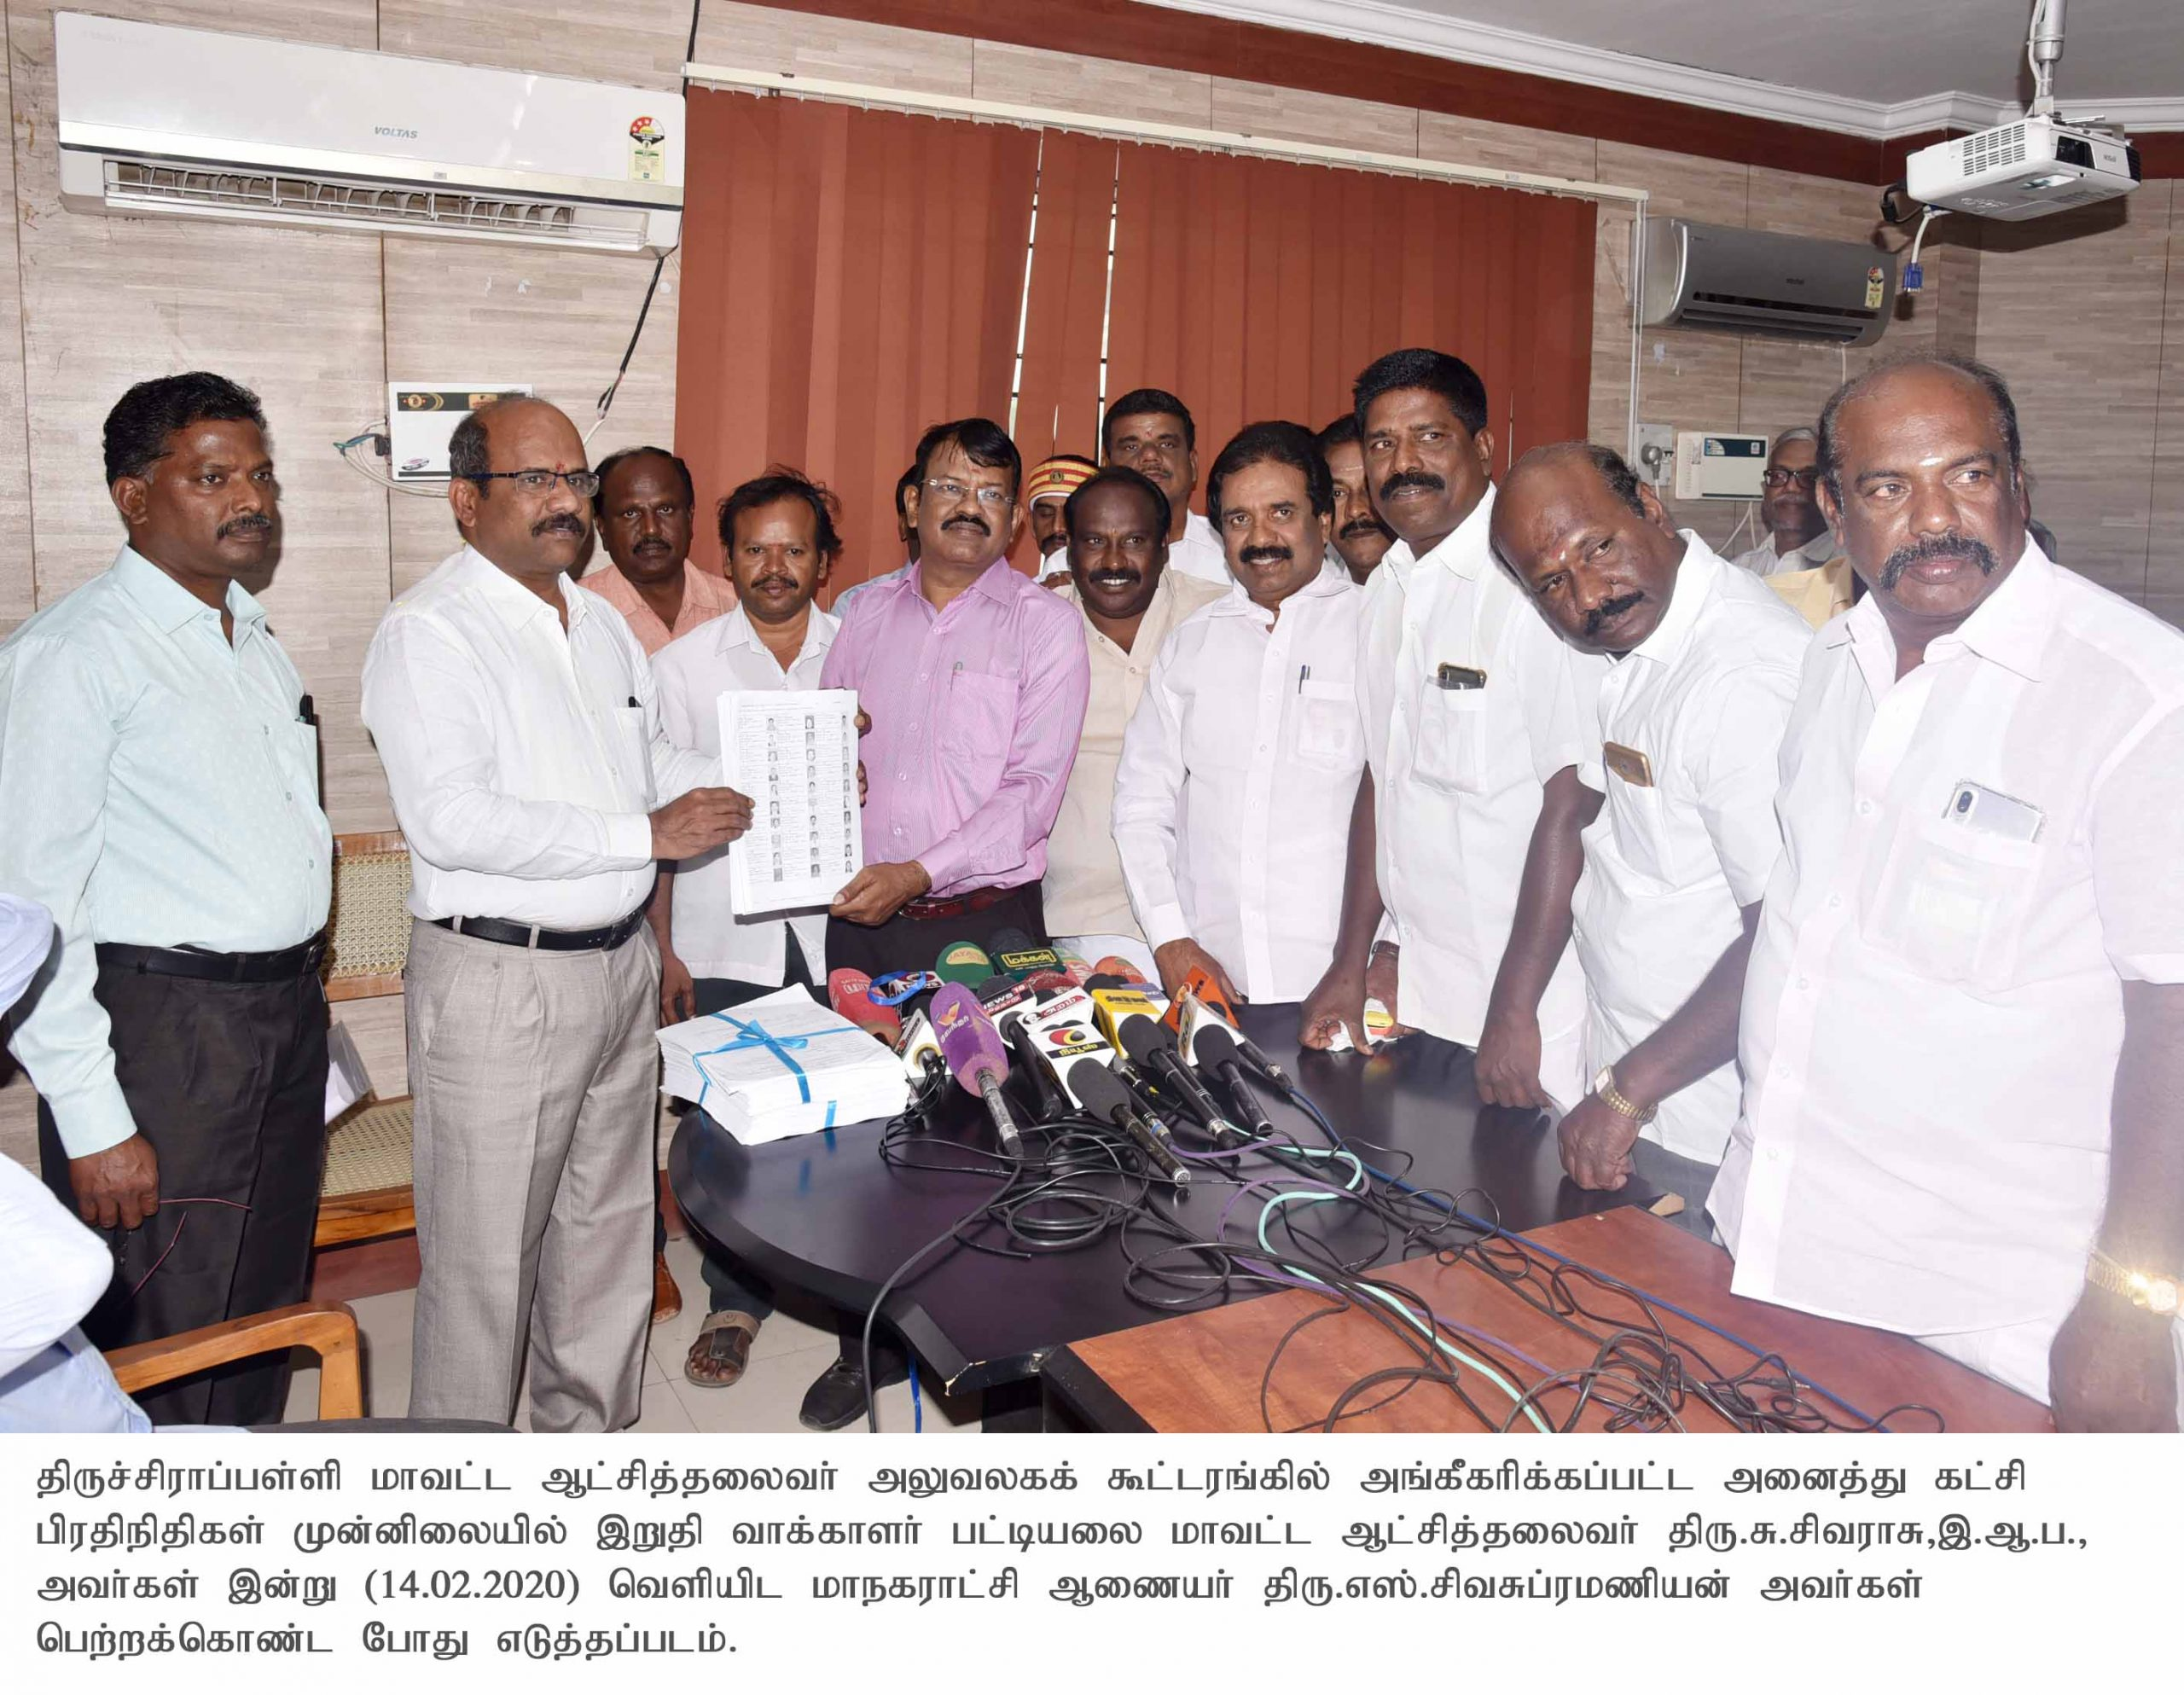 District Collector Published the Final Electoral Roll